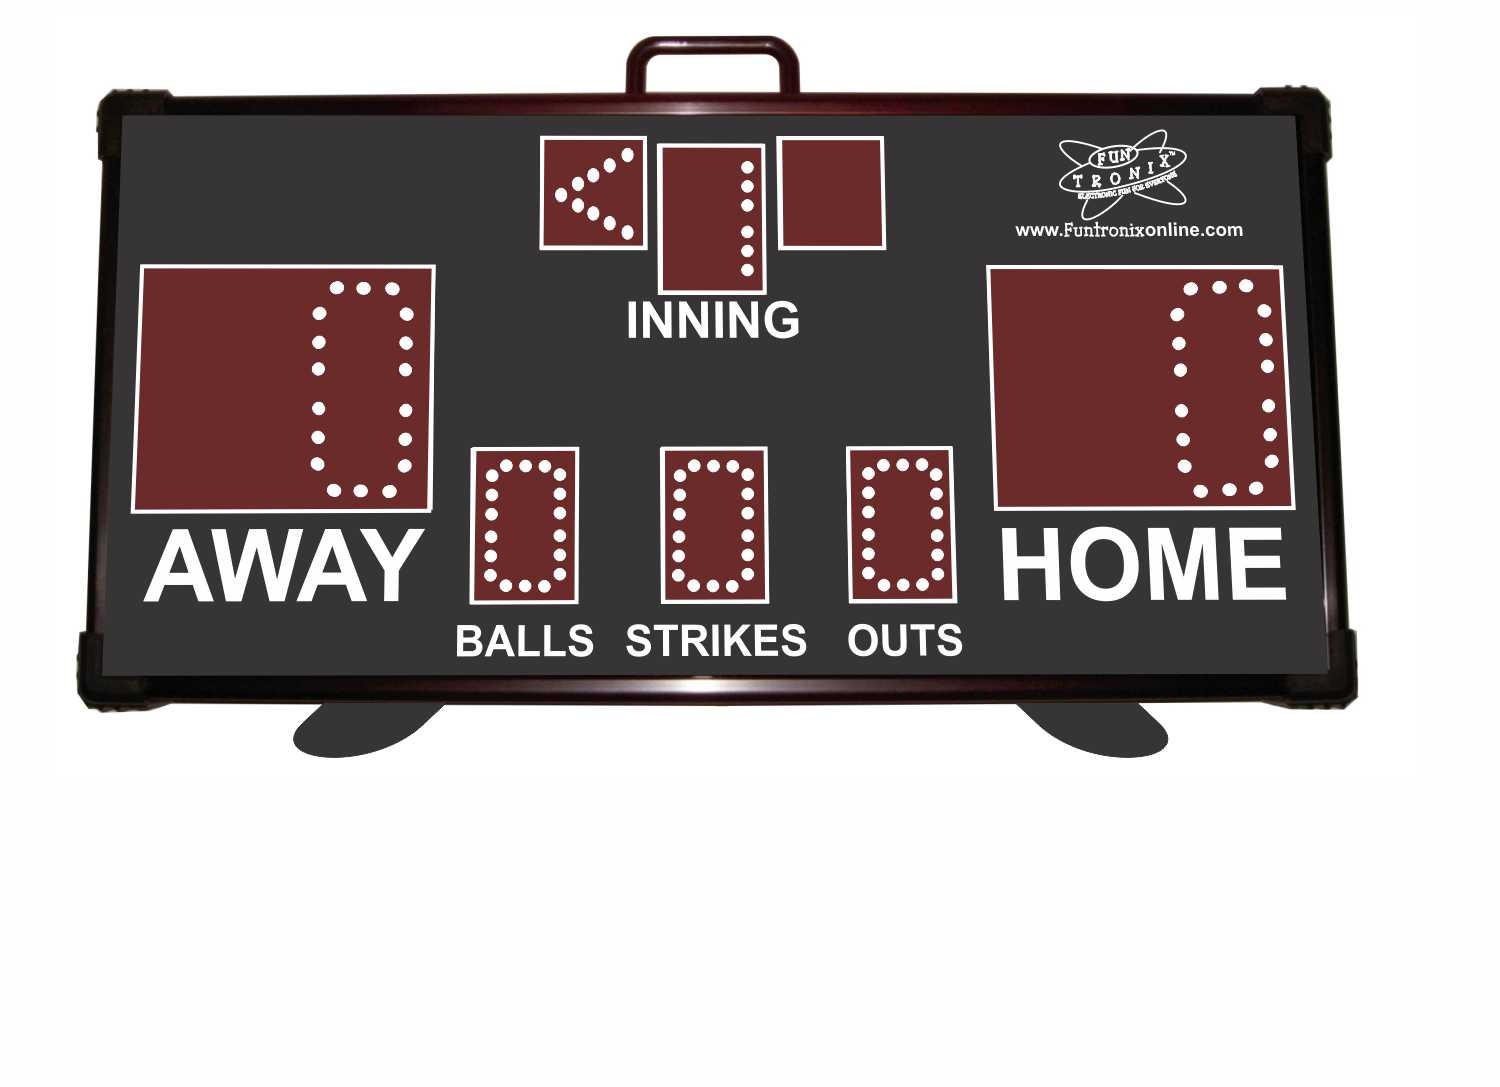 Portable Wireless Baseball Scoreboard Front View